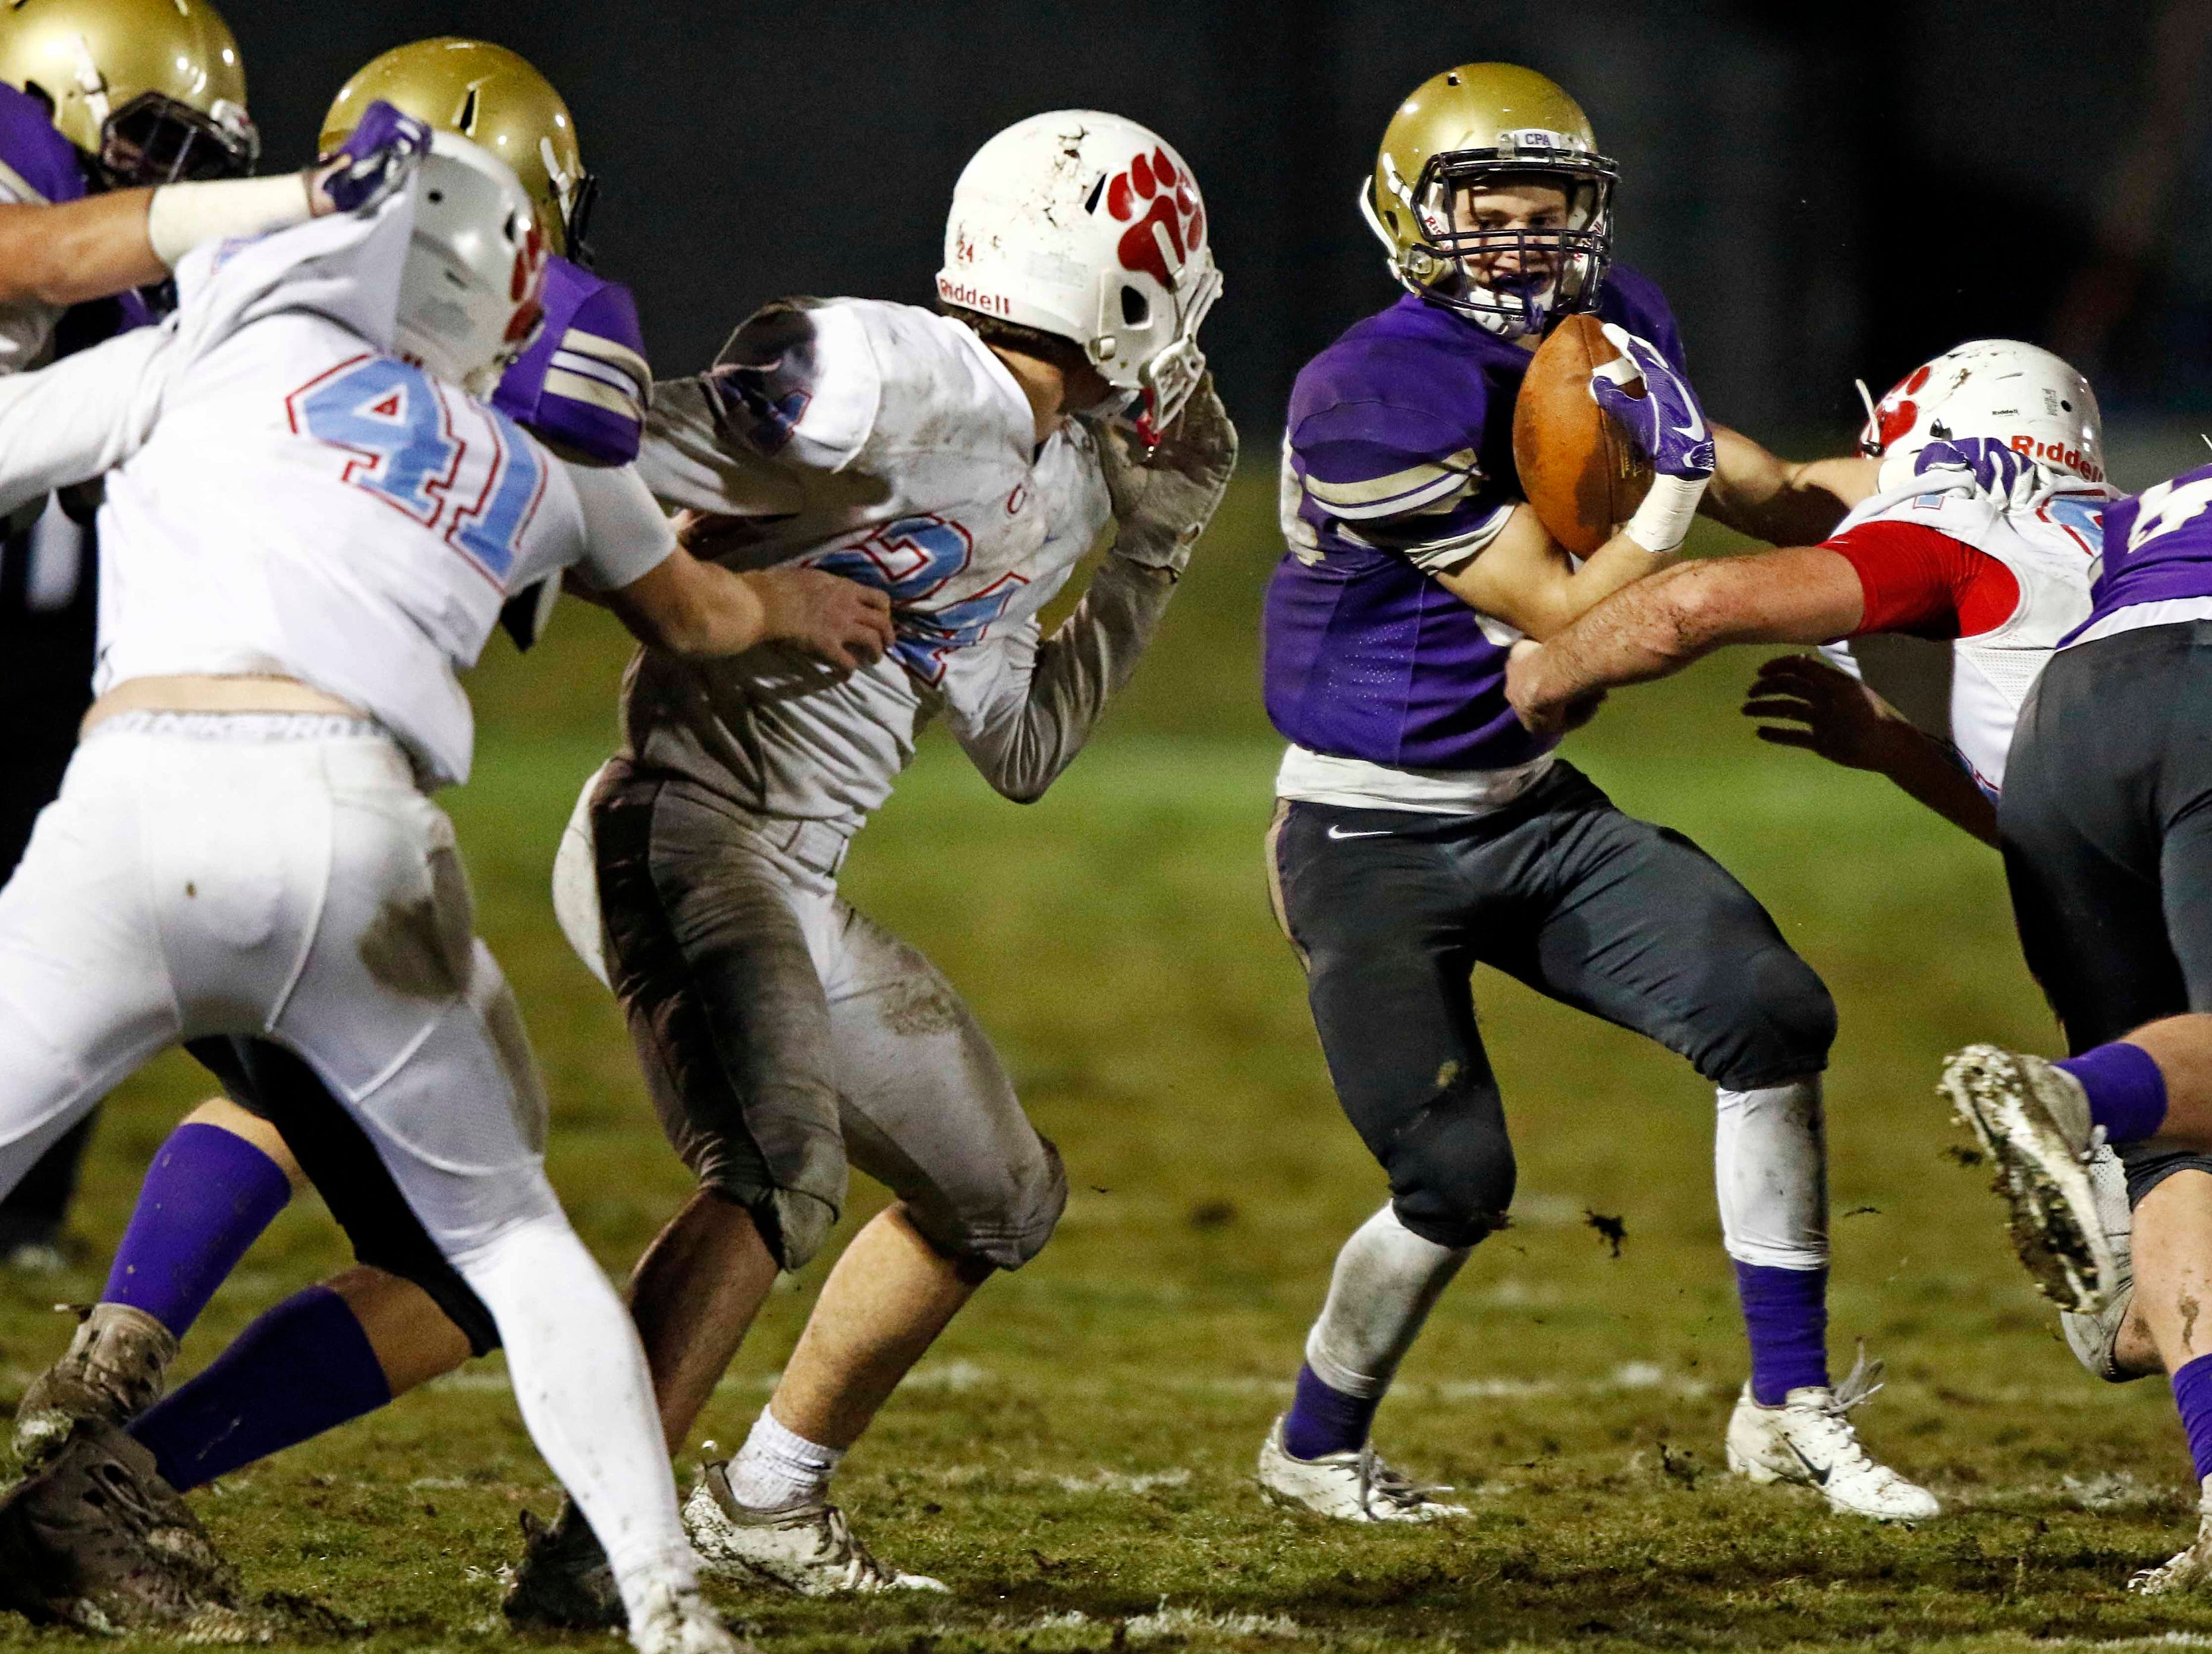 CPA's Andrew Whitely runs for yardage as he tries to avoid being tackled by the USJ defense during their game Friday, Nov. 2, 2018, in Nashville, TN.